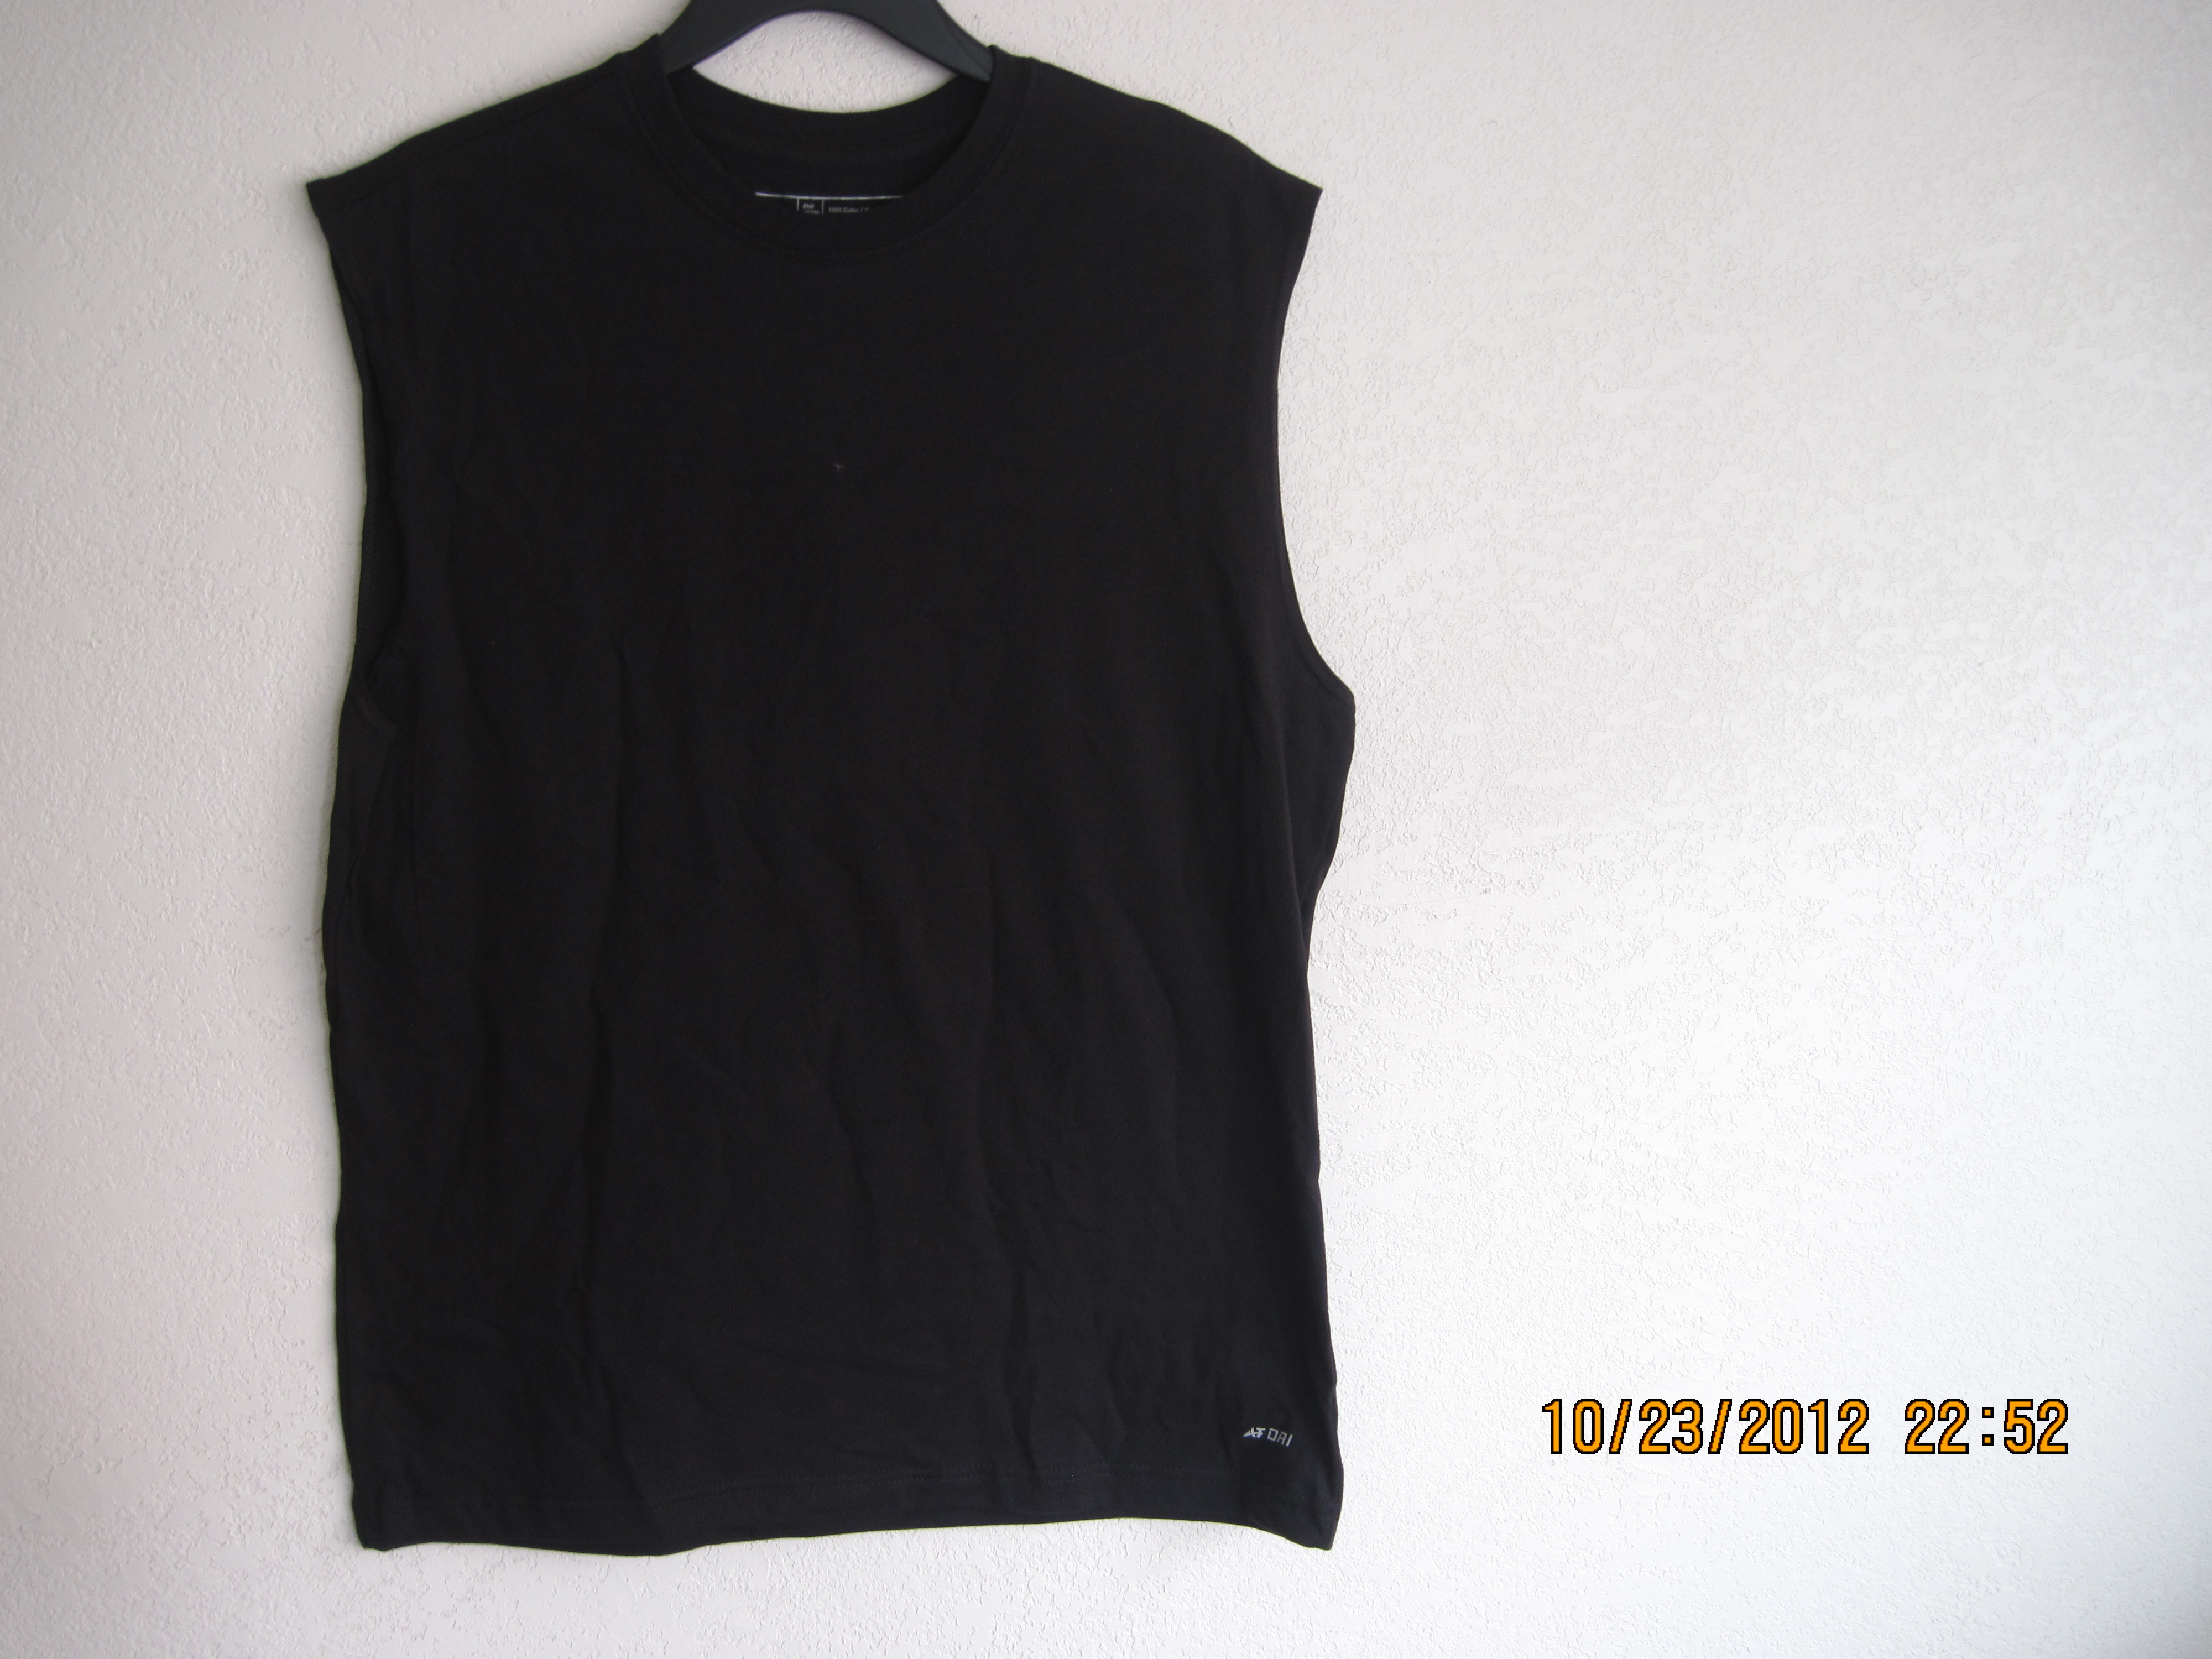 Athletech Sz S Mens T-Shirt Sleeveless Black